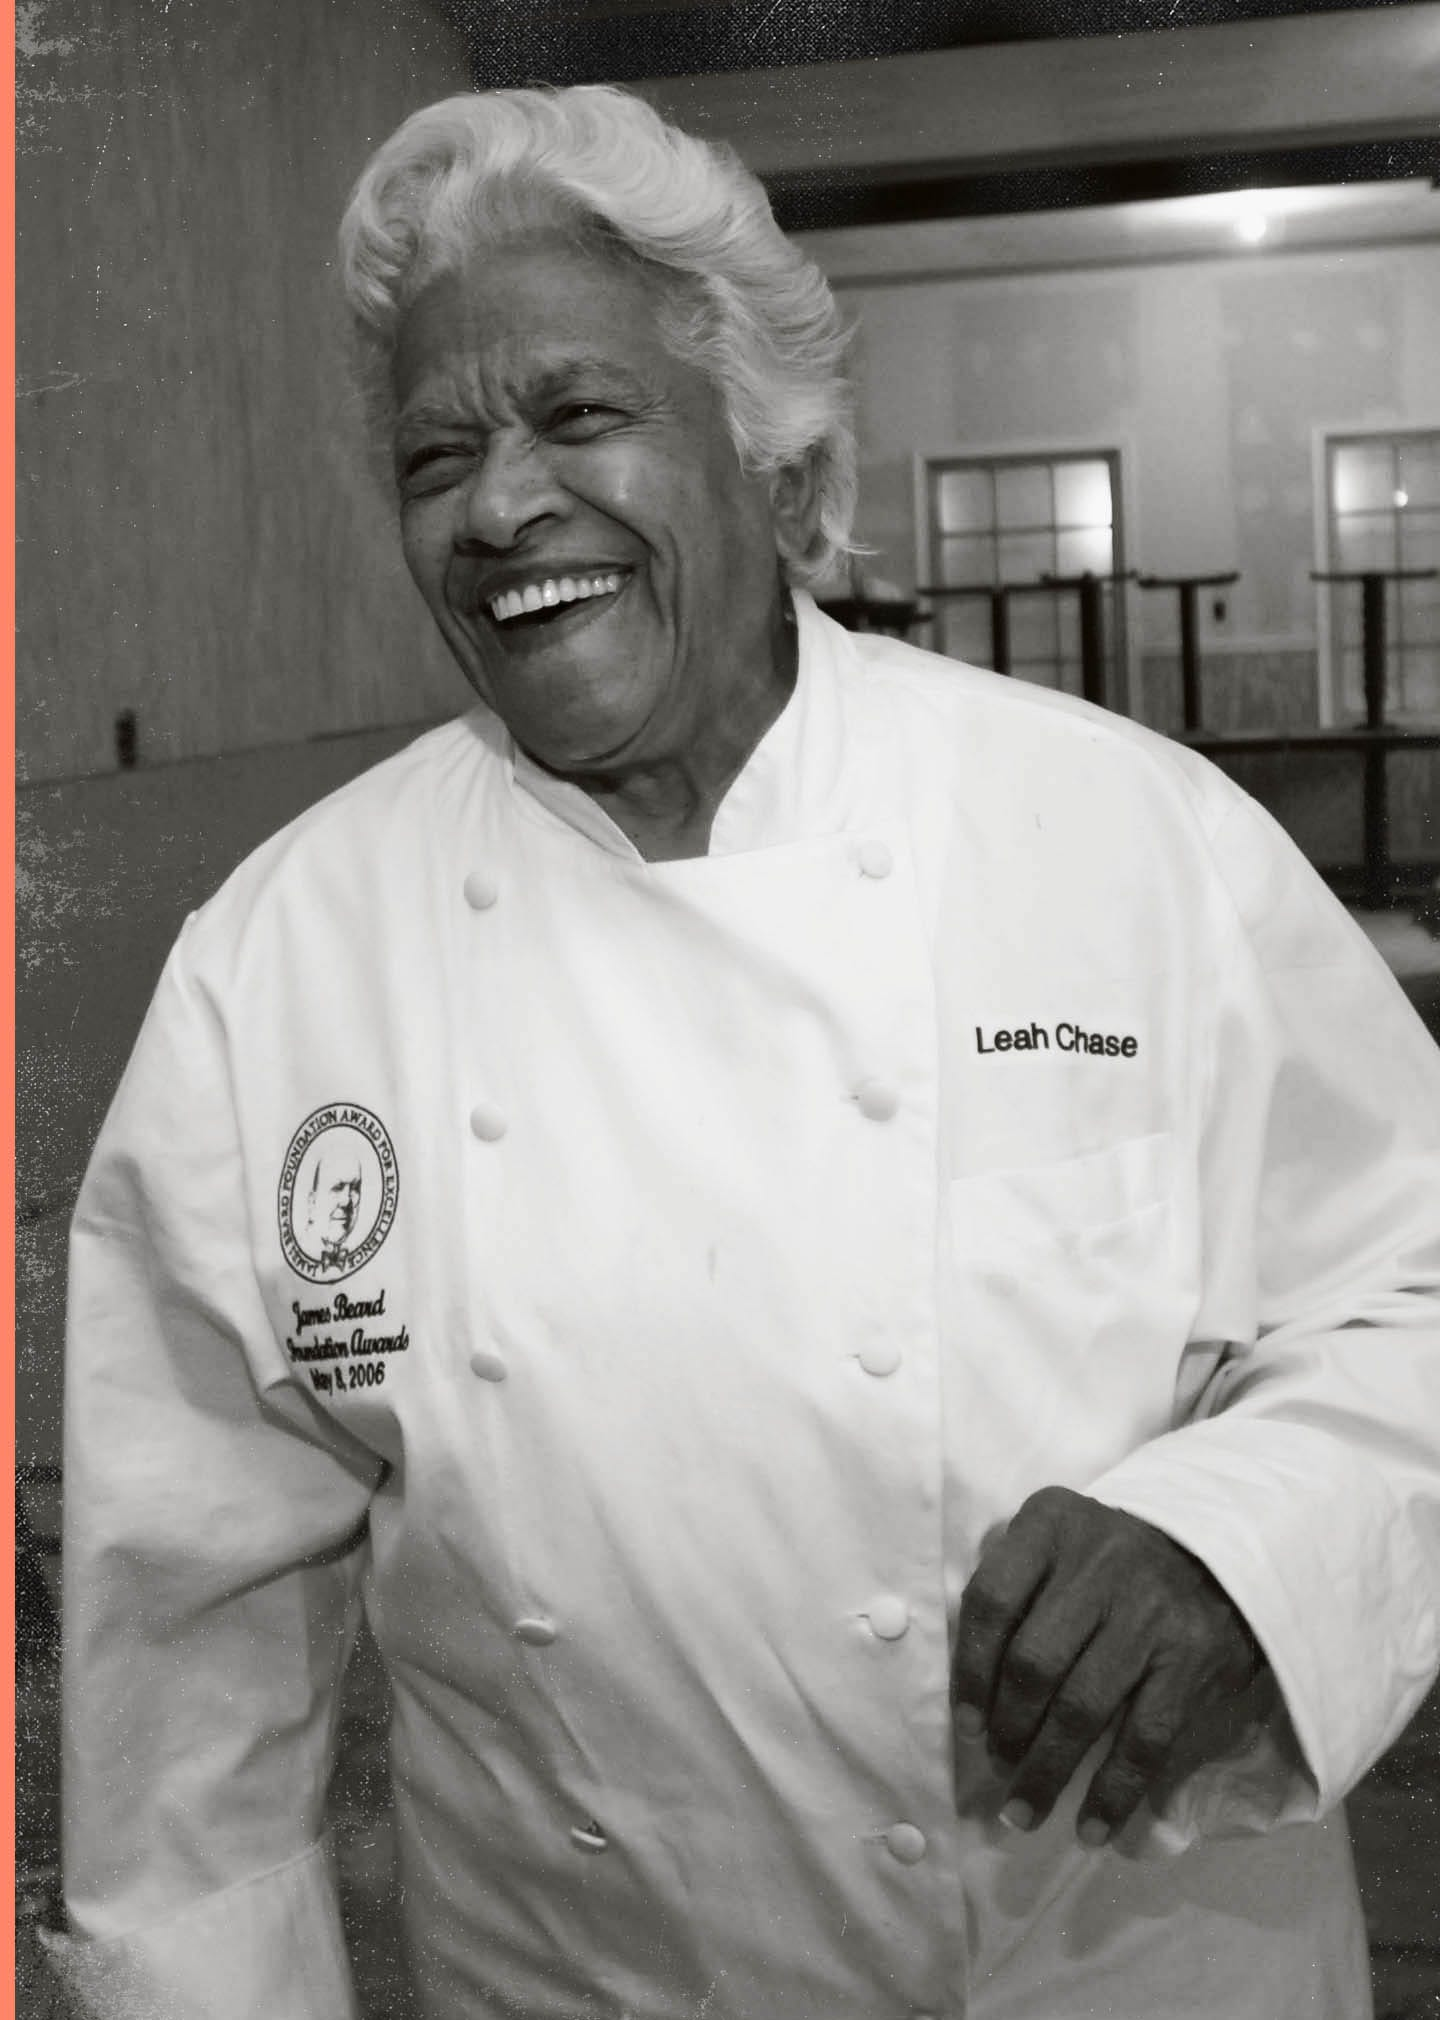 """Leah Chase known as the Queen of Creole Cuisine  opened Dooky Chase's  Restaurant in New Orleans with her husband Edgar """"Dooky"""" Chase II in the 1950s. The restaurant was initially a food stand, the couple transformed it  into a  dine in restaurant. The restaurant became a meeting place for strategizing during the Civil Rights Movement."""